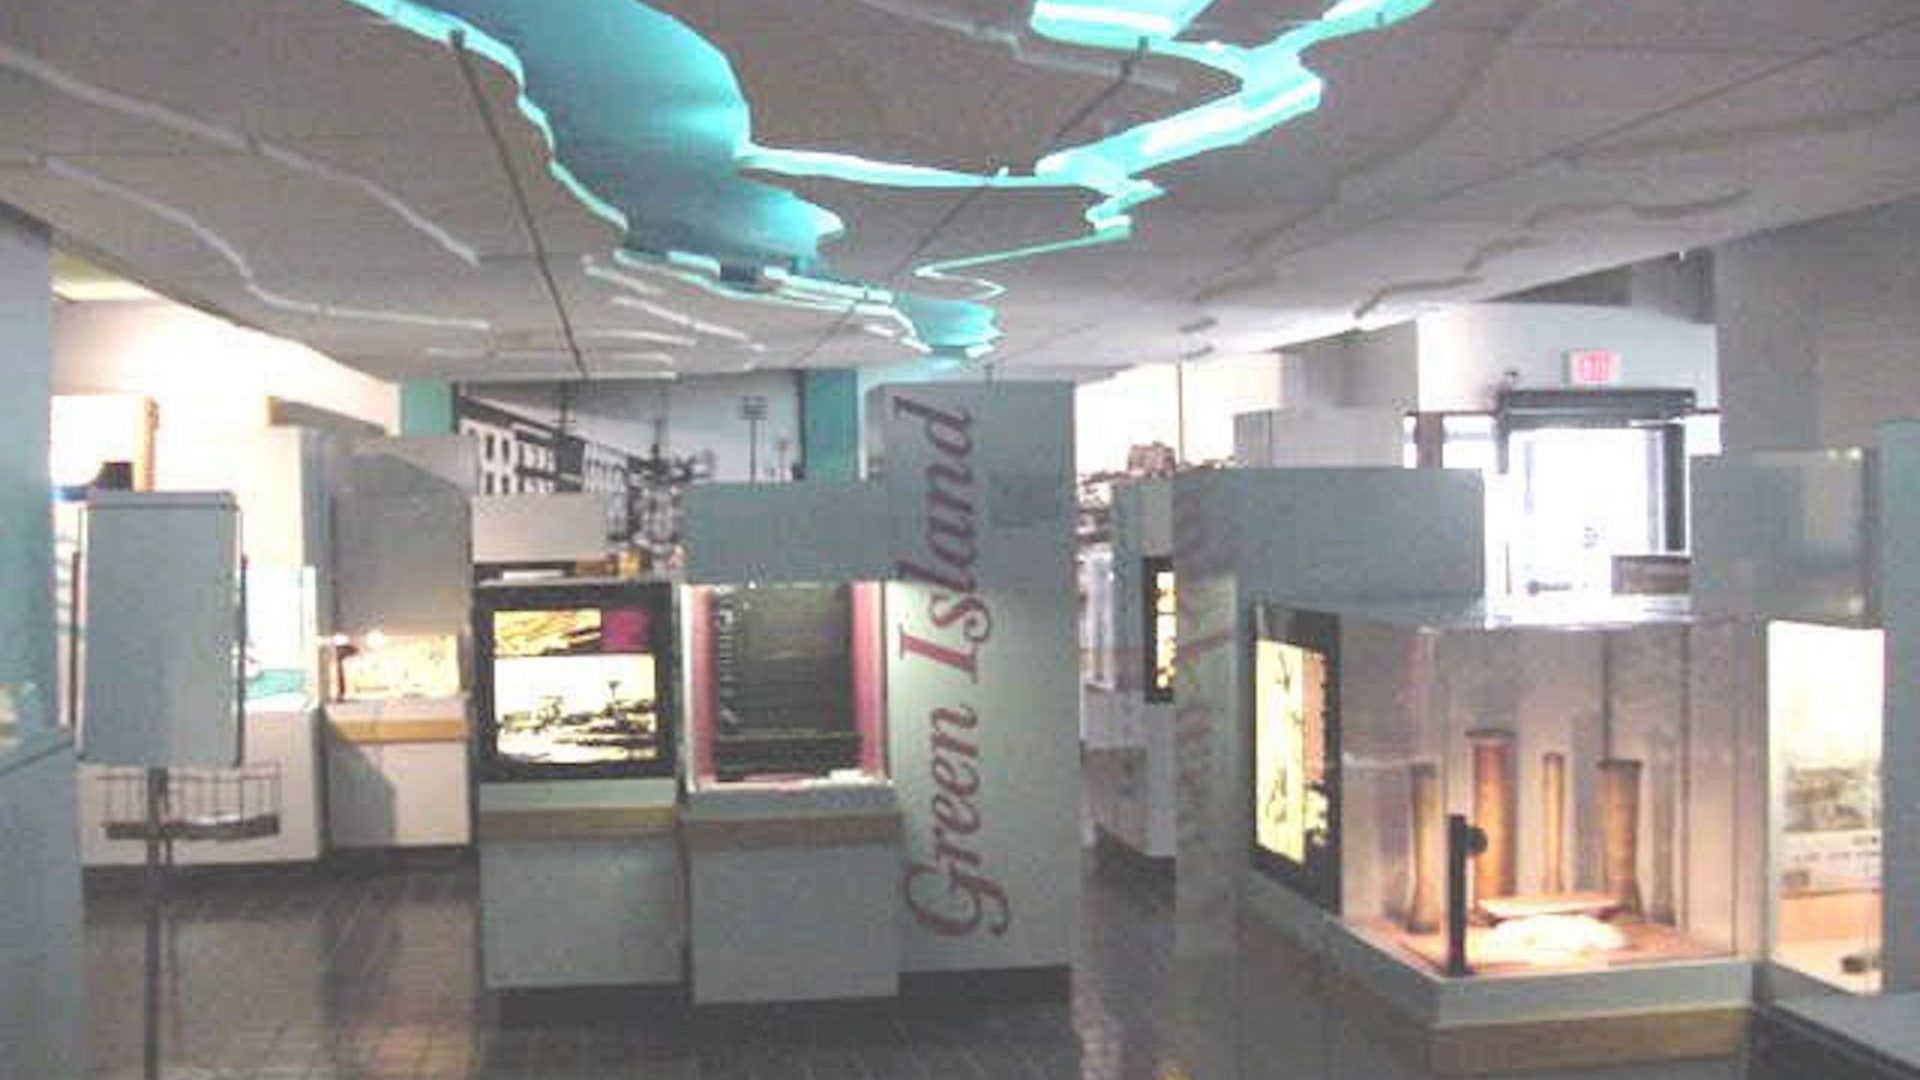 Troy's RiverSpark Visitor Center